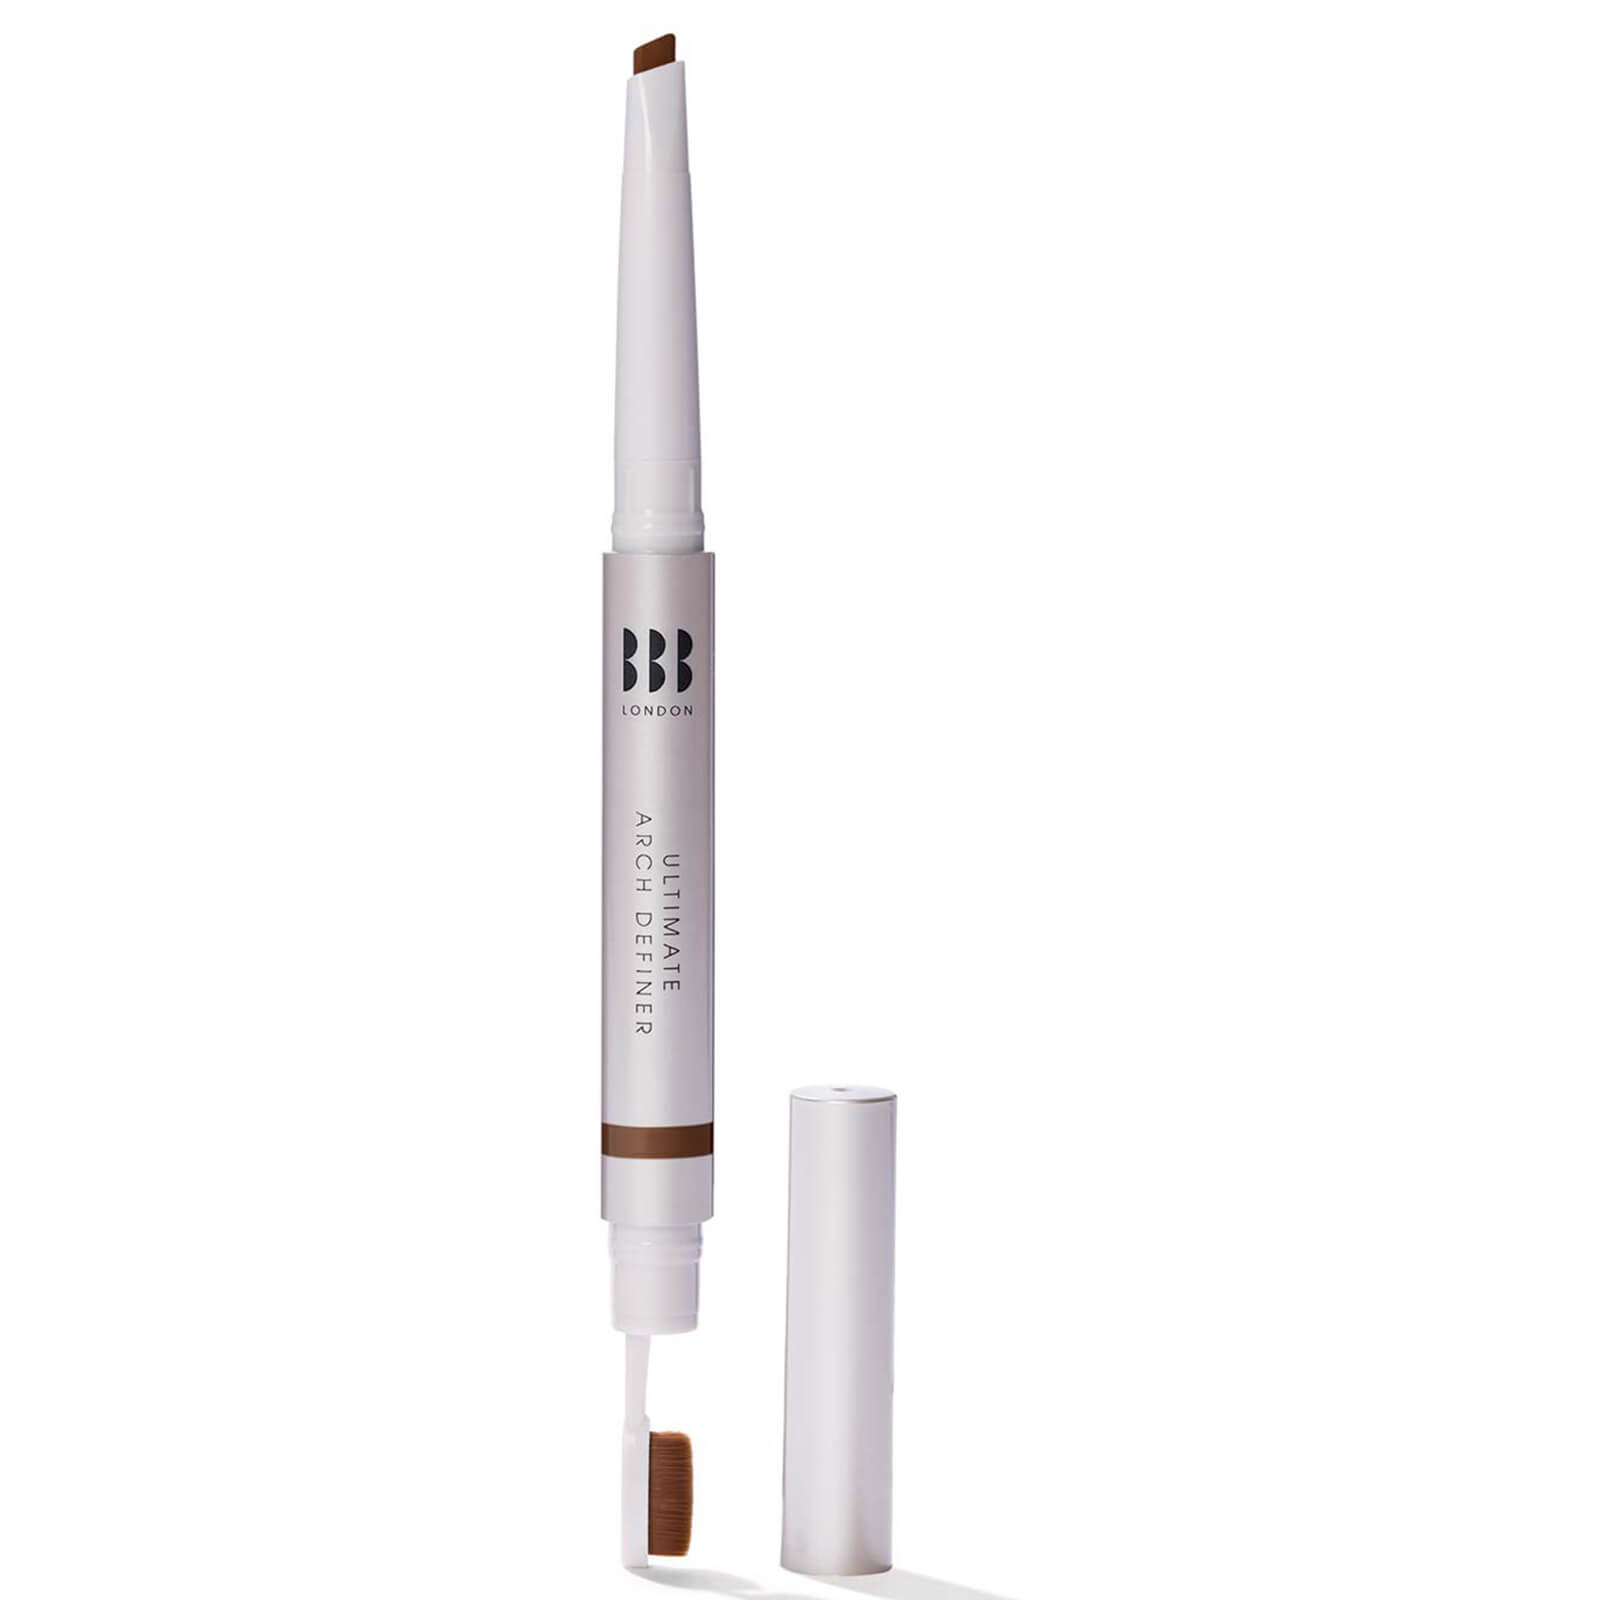 BBB London Ultimate Arch Definer 0.3g (Various Shades) - Clove